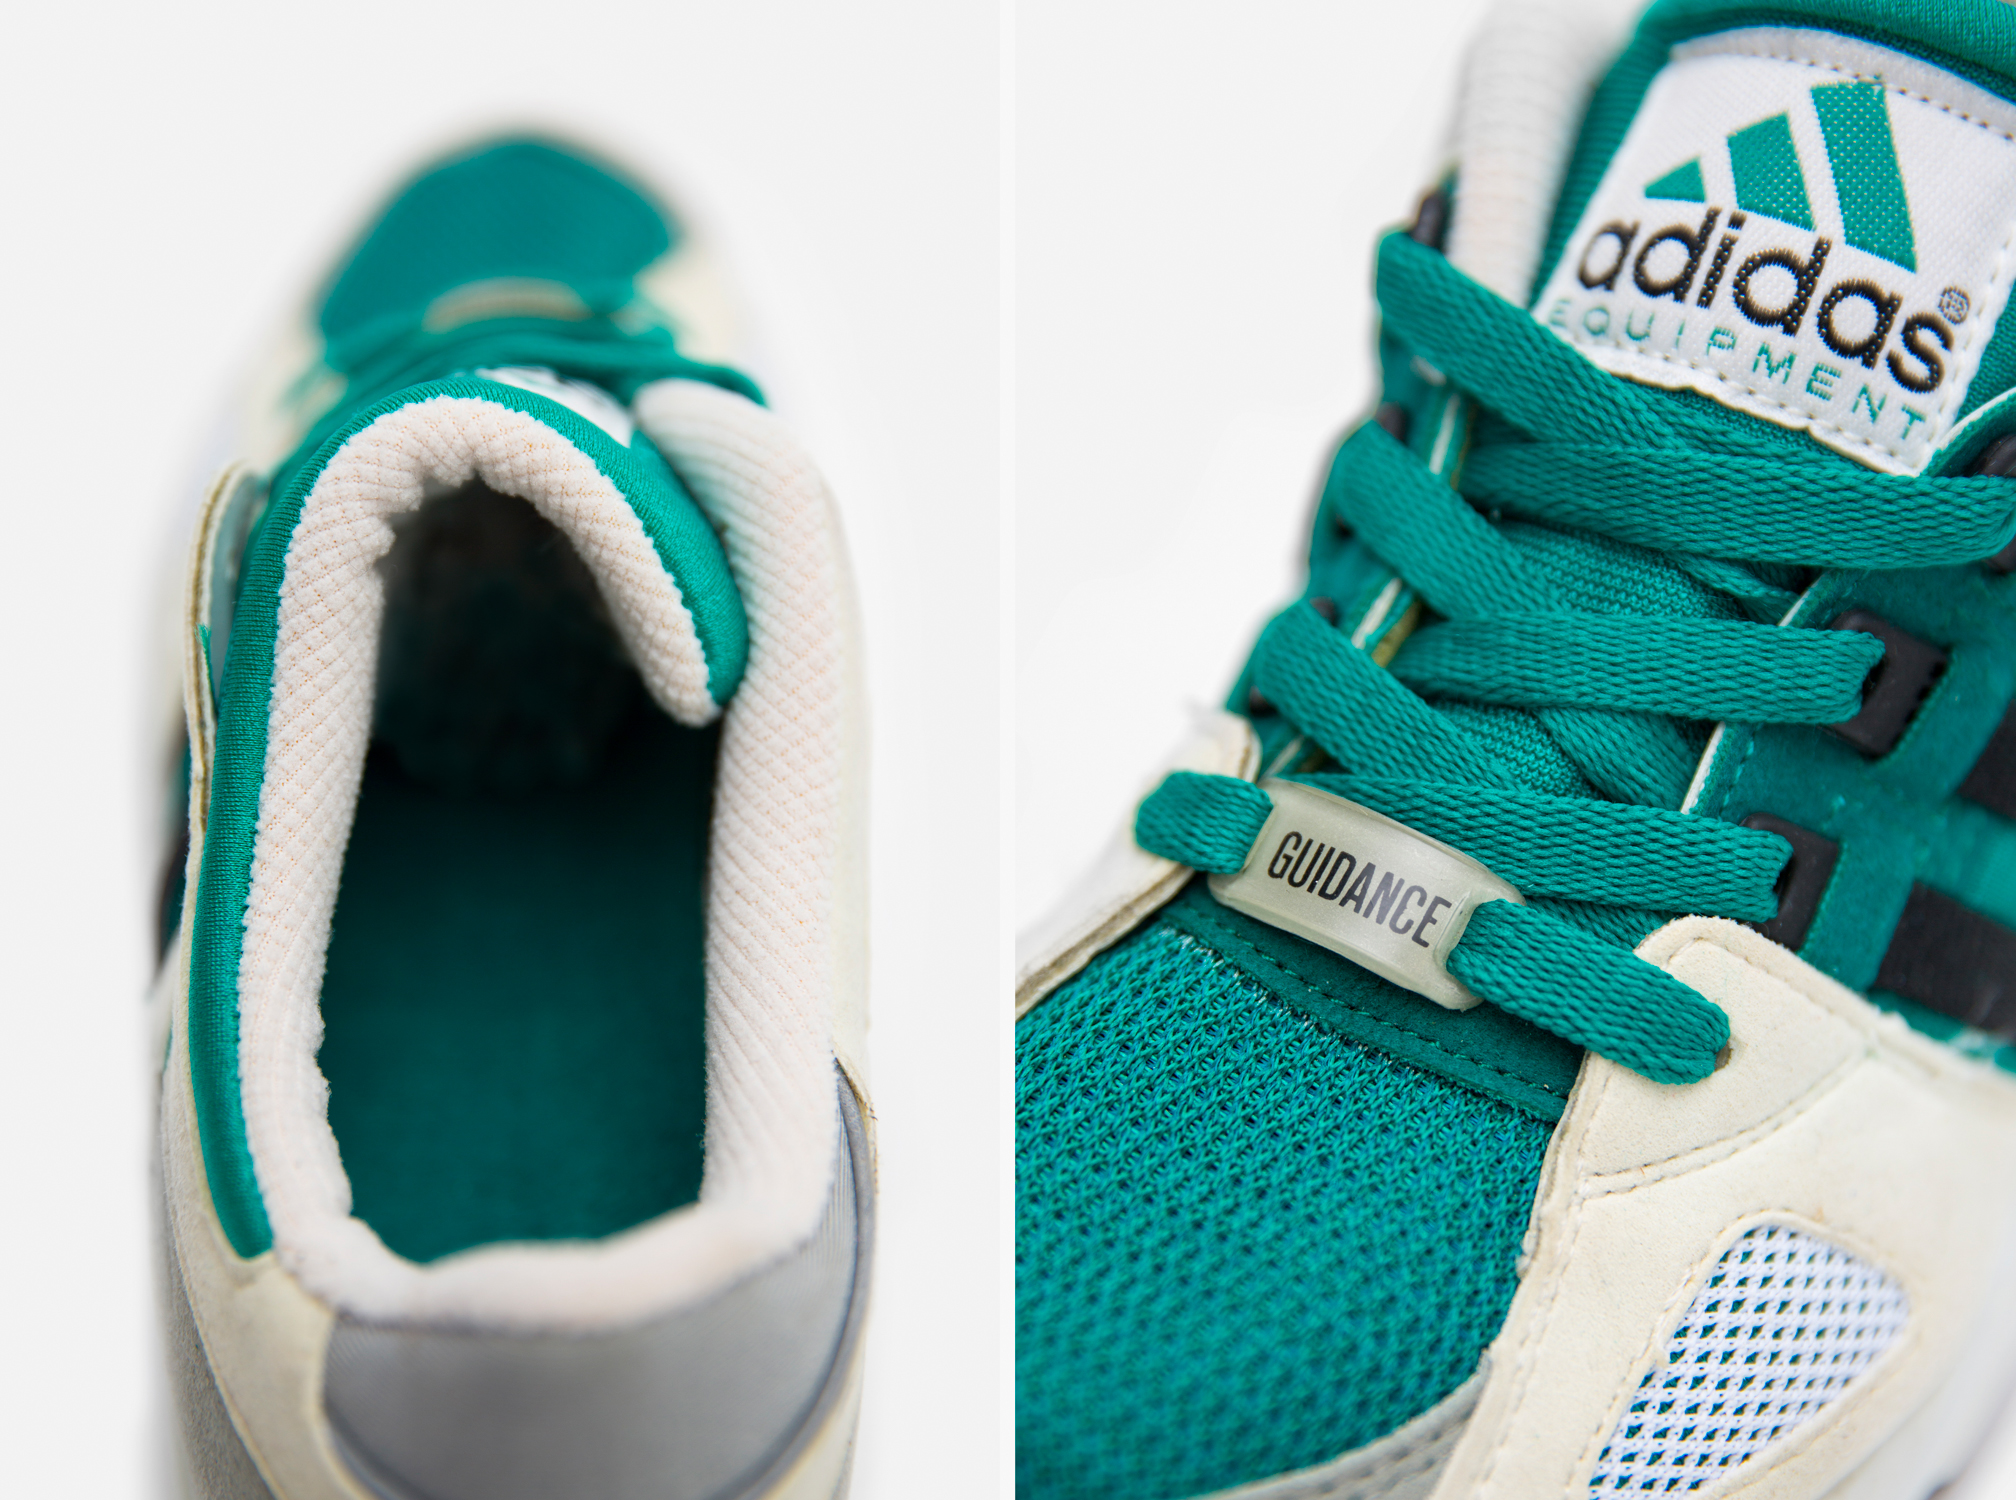 adidas_EQT_Equipment_lock_up_size_hq_exclusive-11